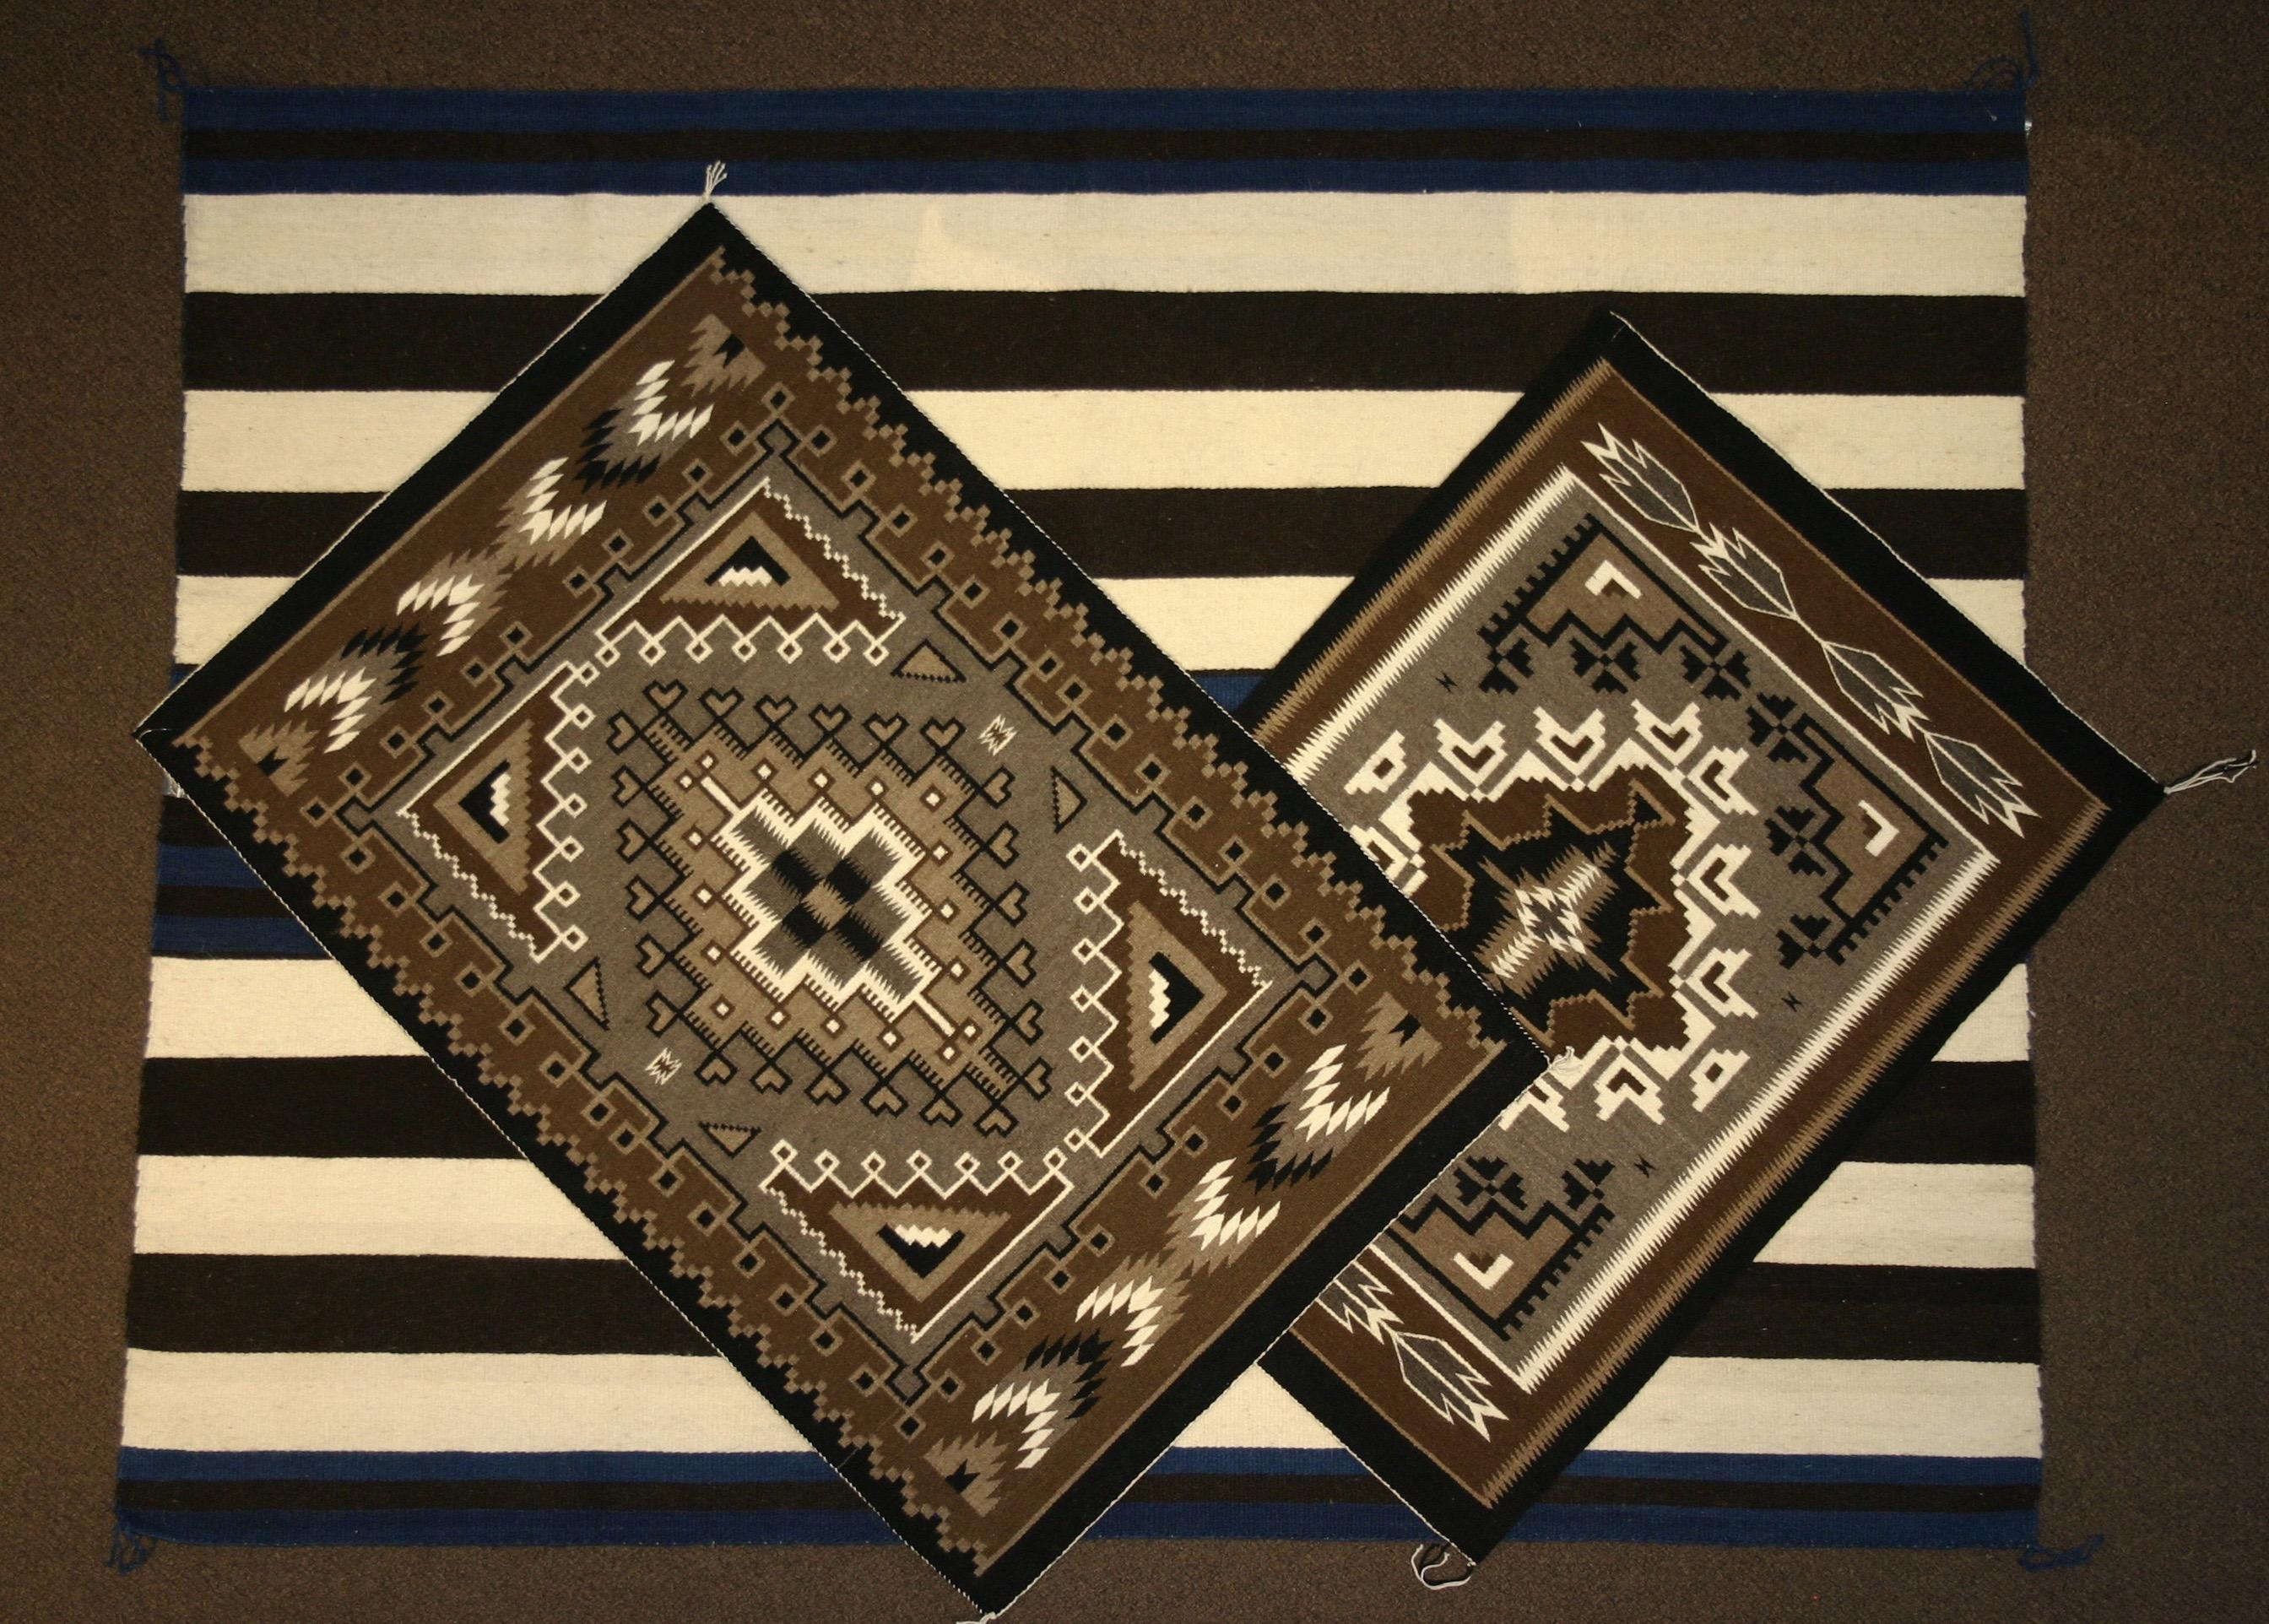 this rug navajo rugs taken pin from cross vintage stitch pattern design a features